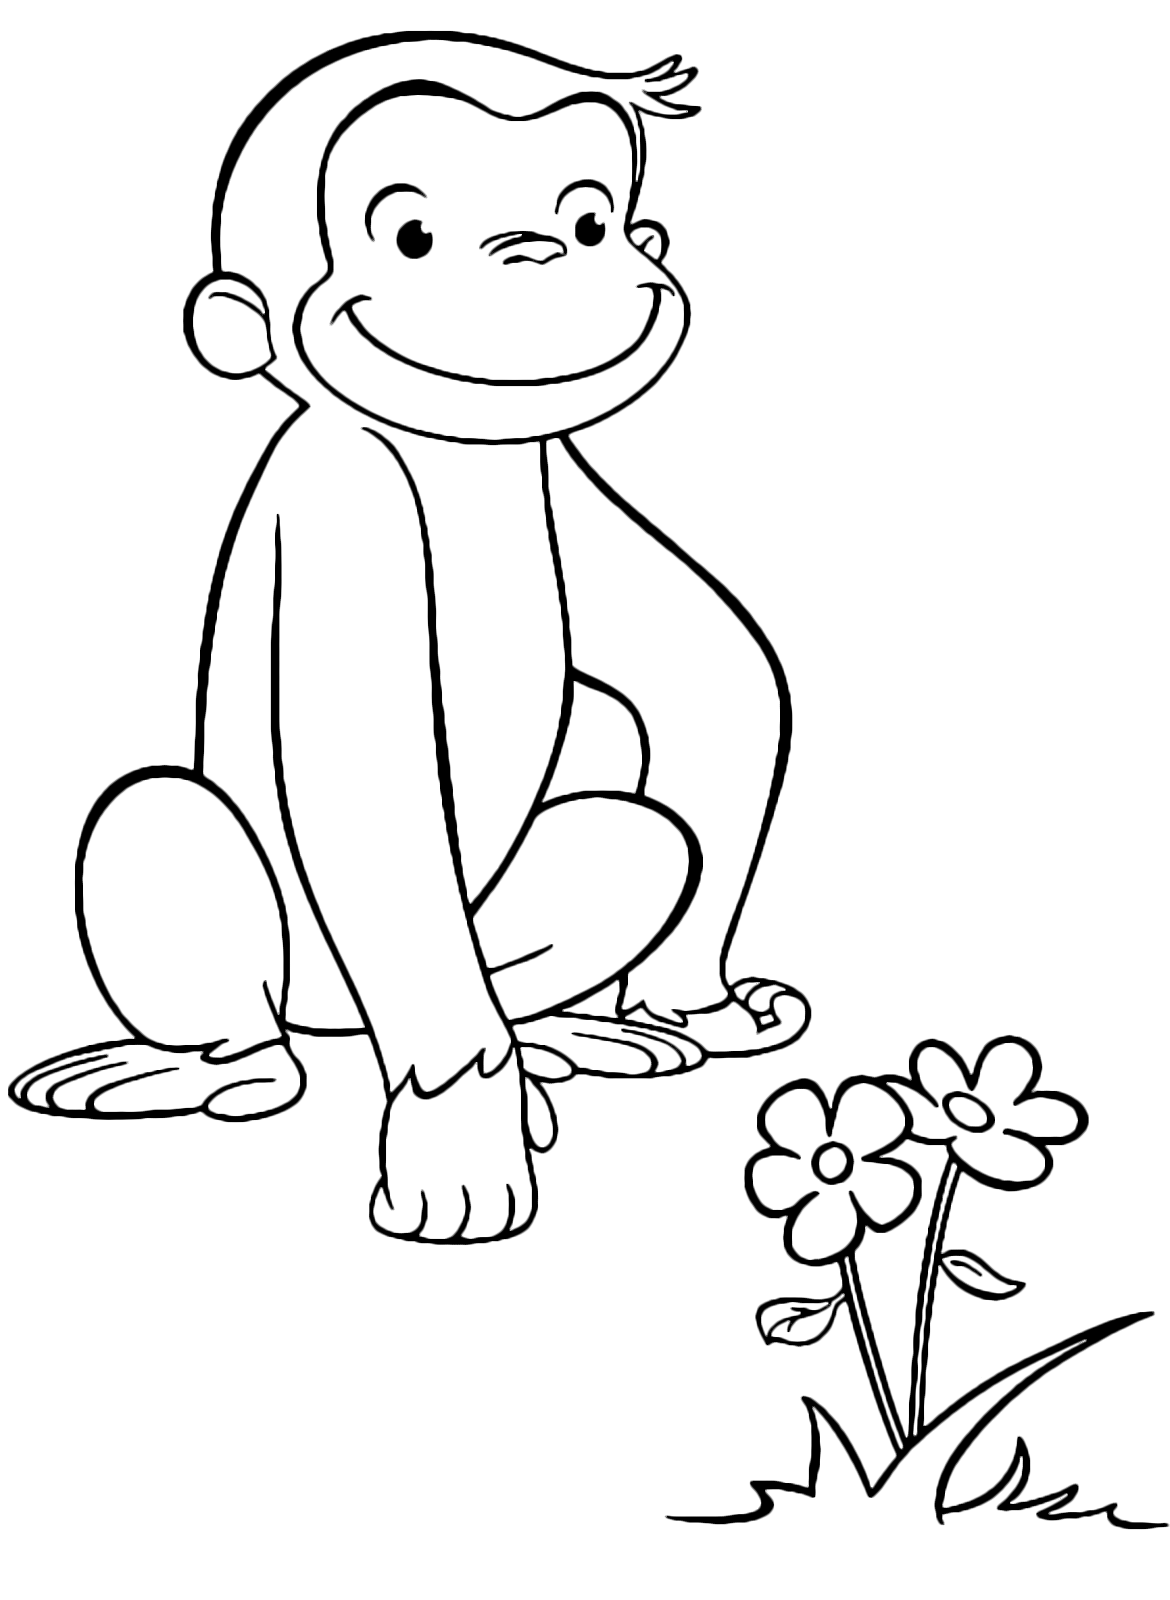 Curious George - George the monkey observes a flower